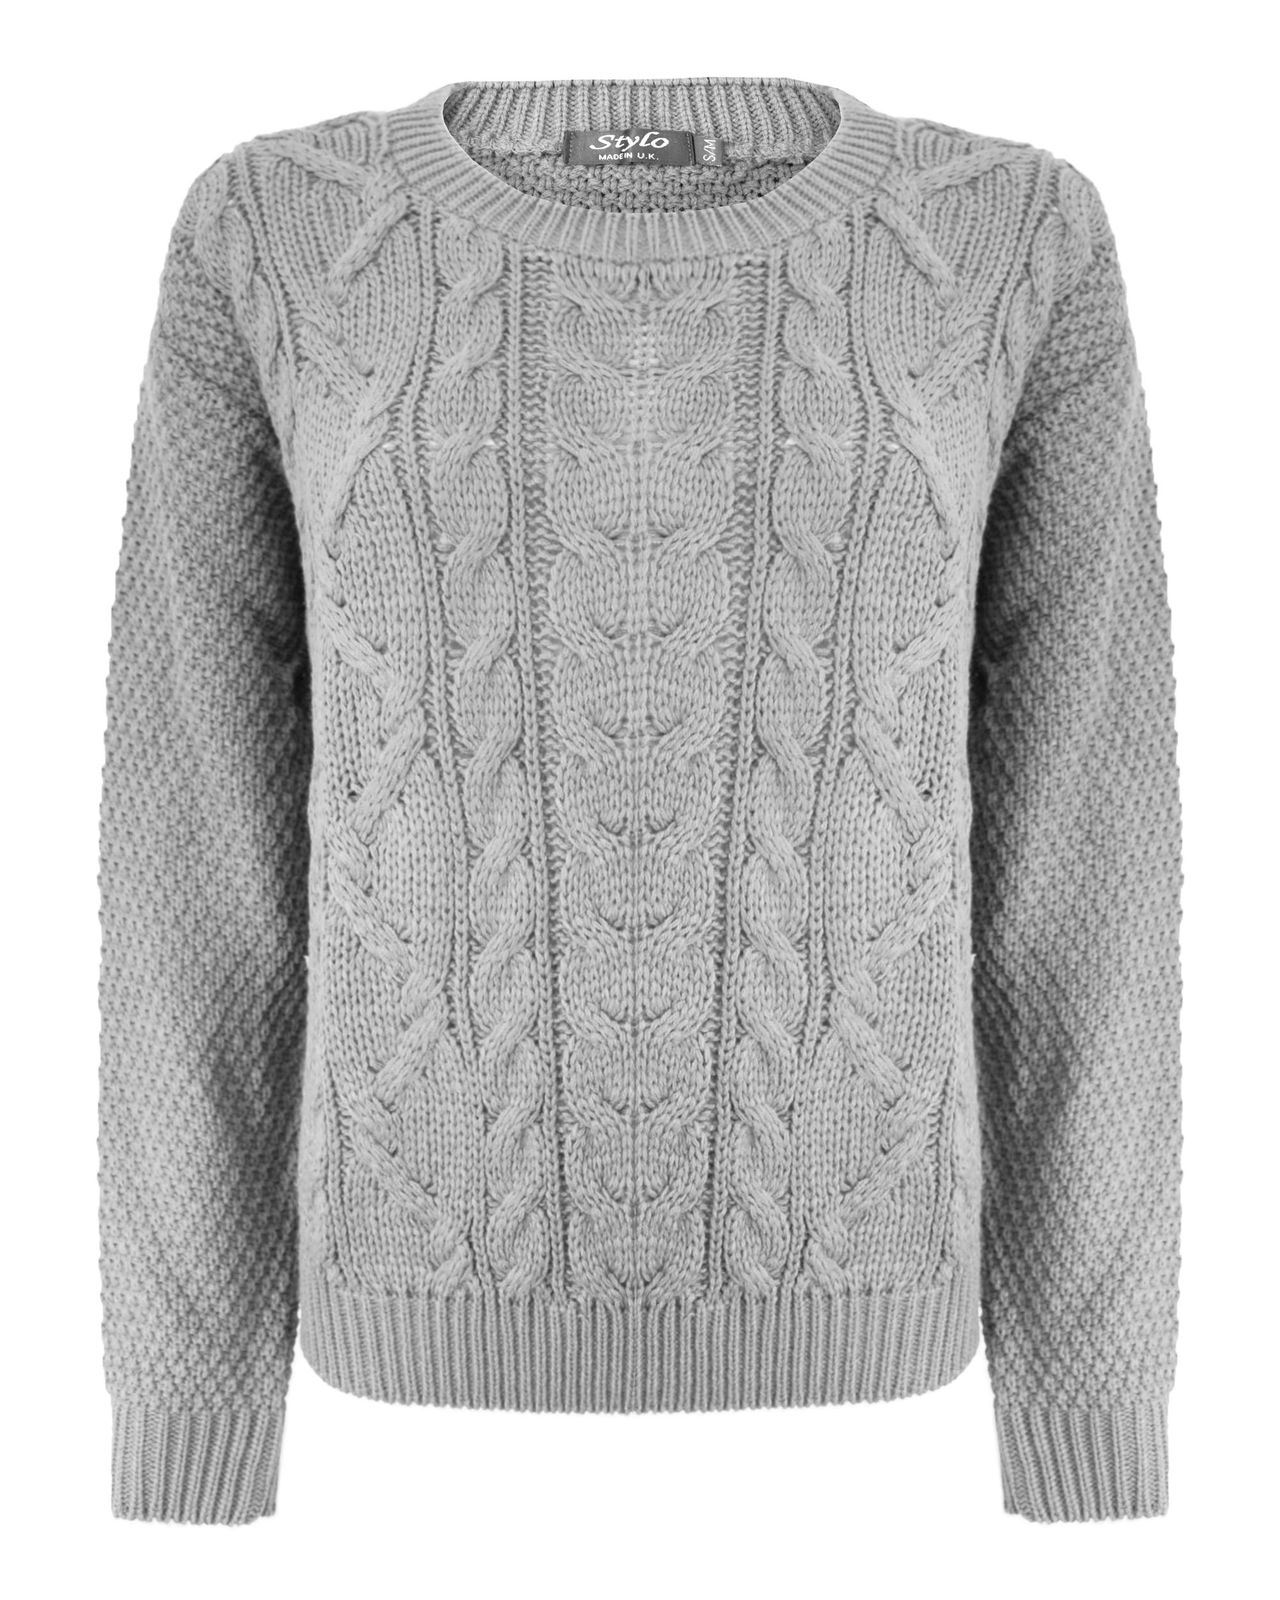 cable knit jumper ladies-women-knitted-long-sleeve-cable-knit-jumper- bfdiggn